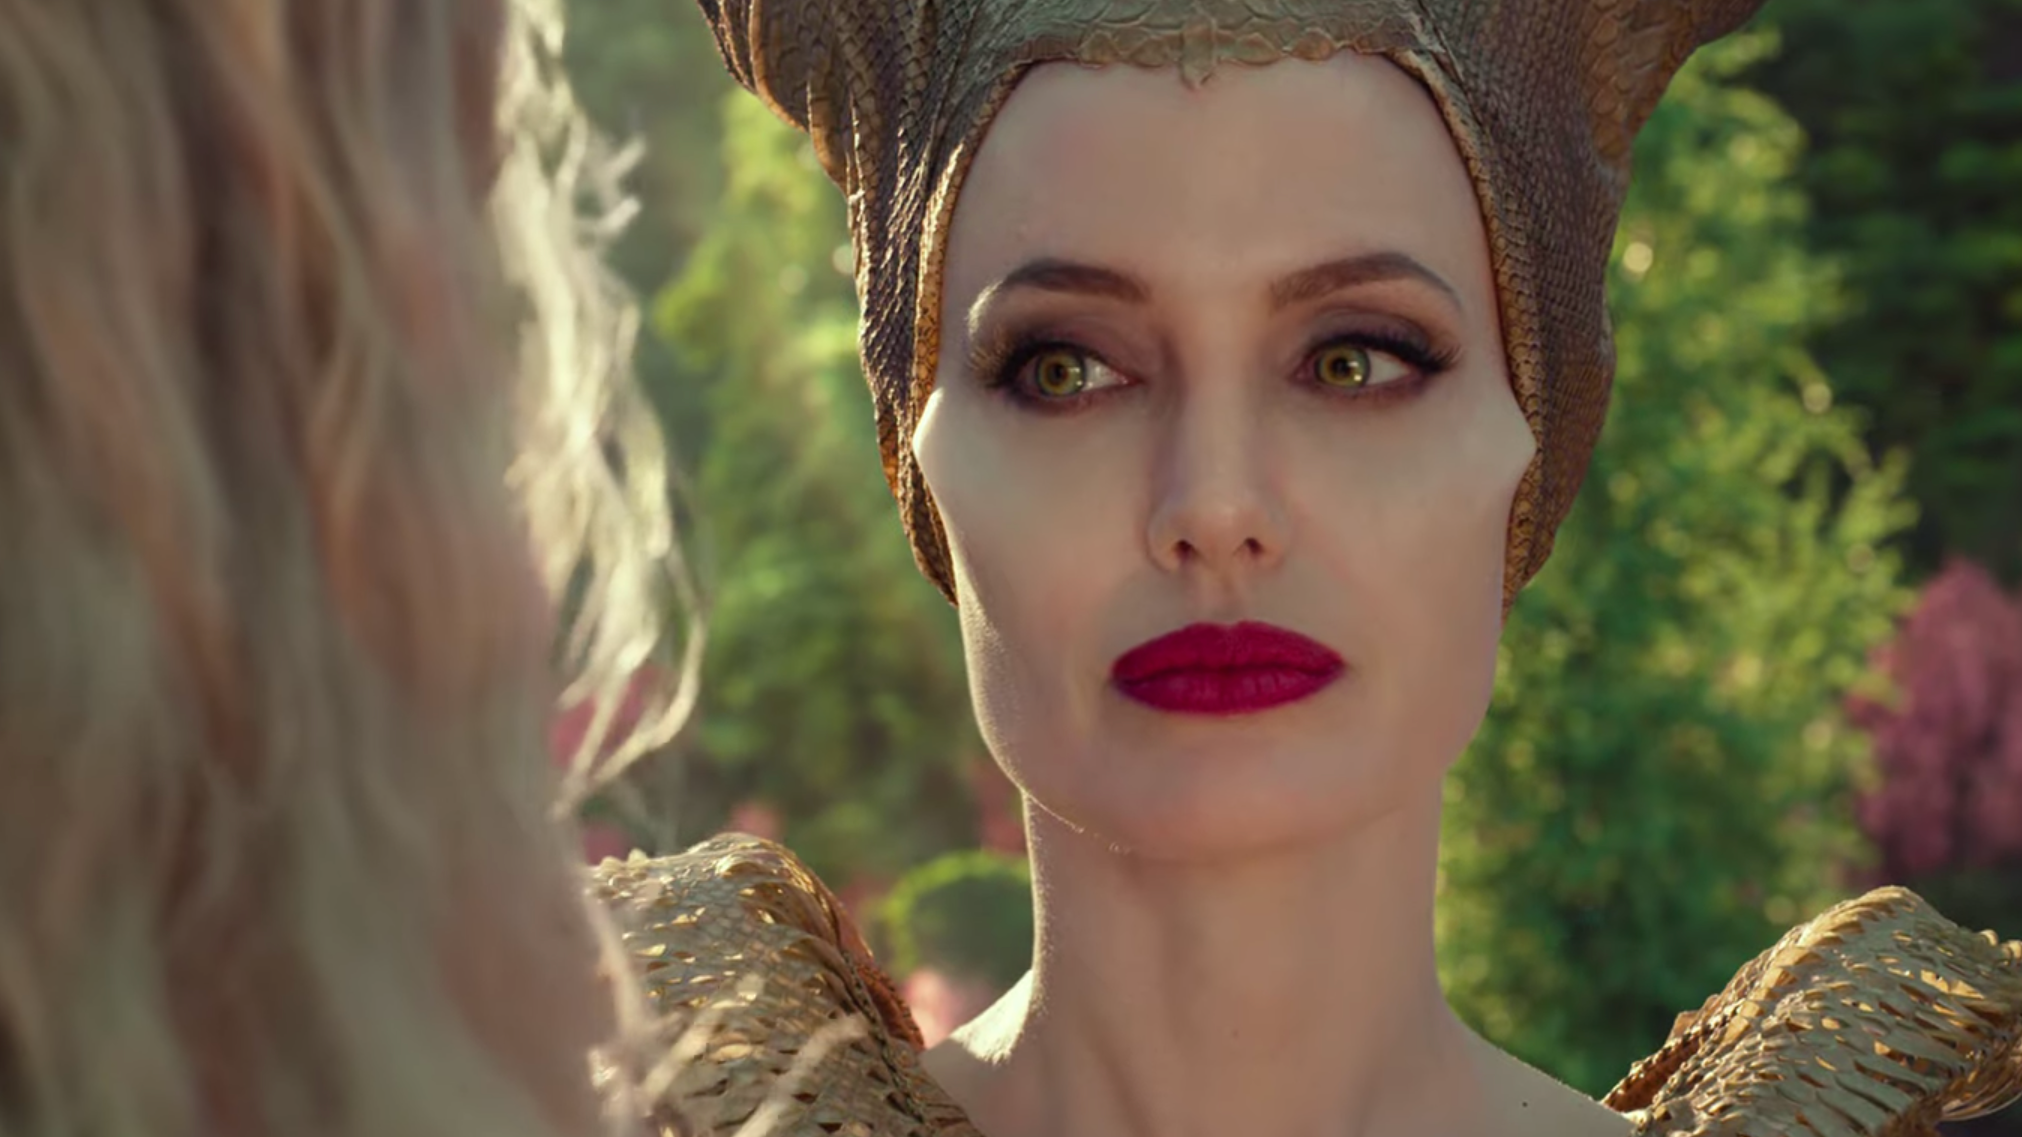 In Disney's Latest Maleficent: Mistress Of Evil Trailer, Love And Villainy Are In The Air